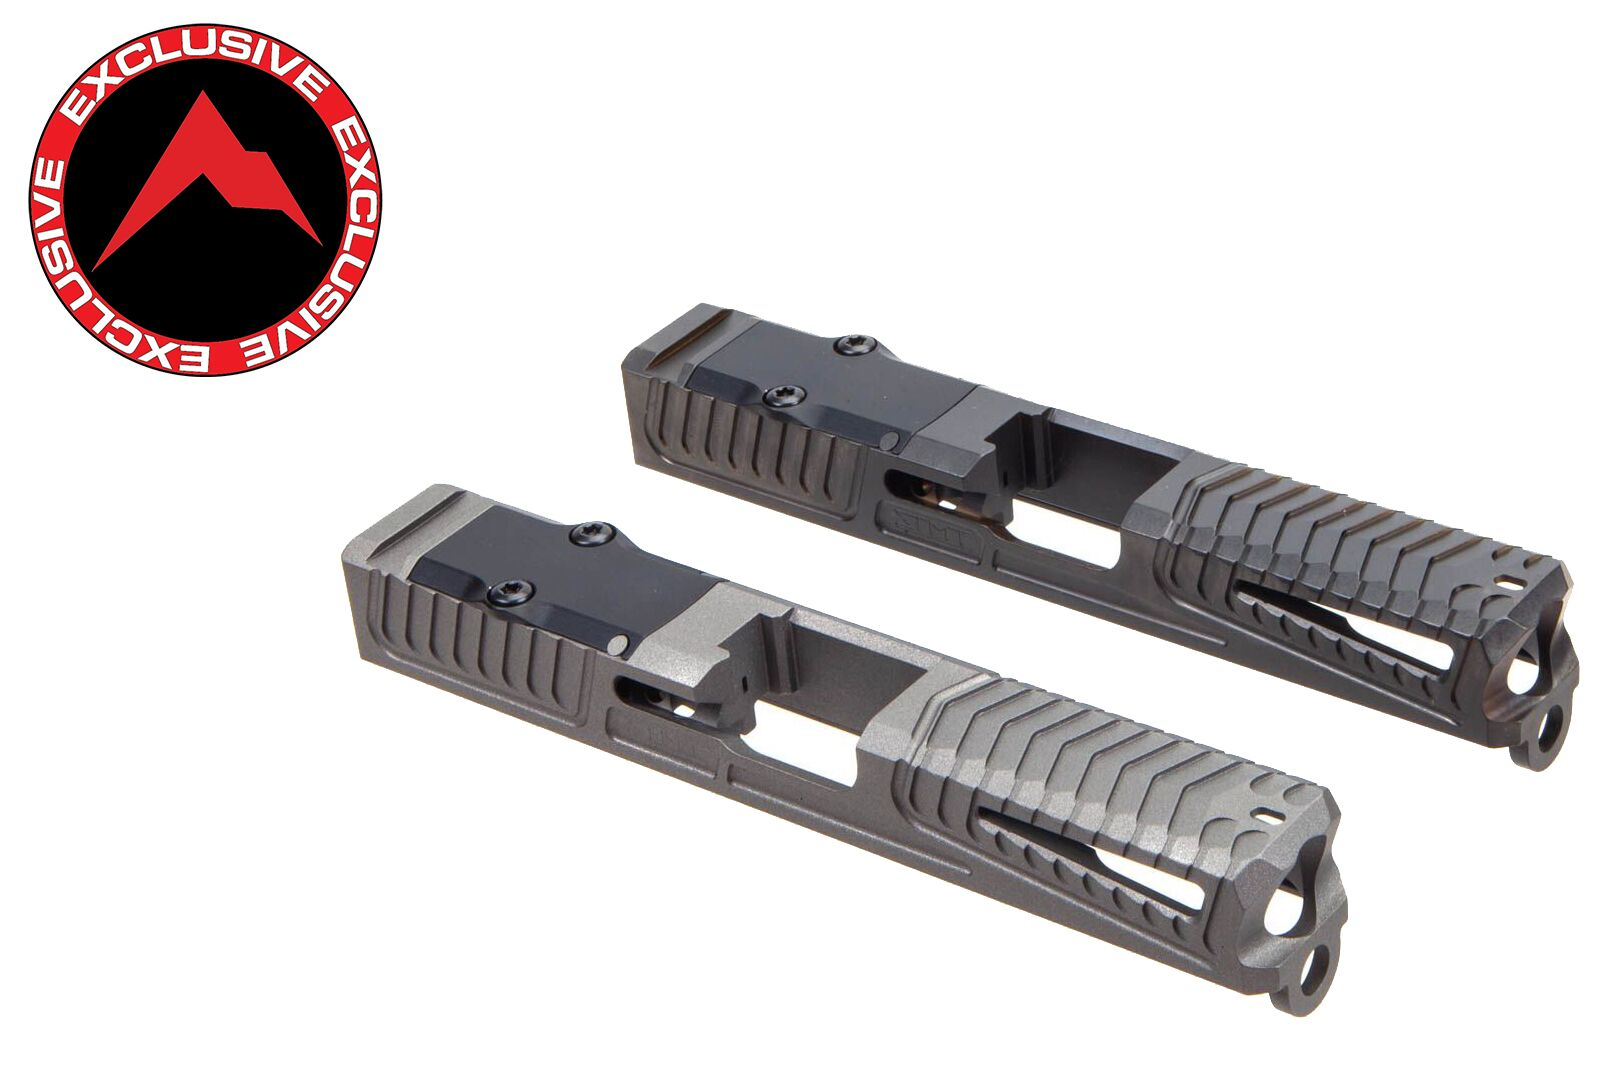 Statement Defense Glock 19 Gen 3 Overbite SW Stripped Slide - Trijicon RMR Cut (Rainier Arms Exclusive)